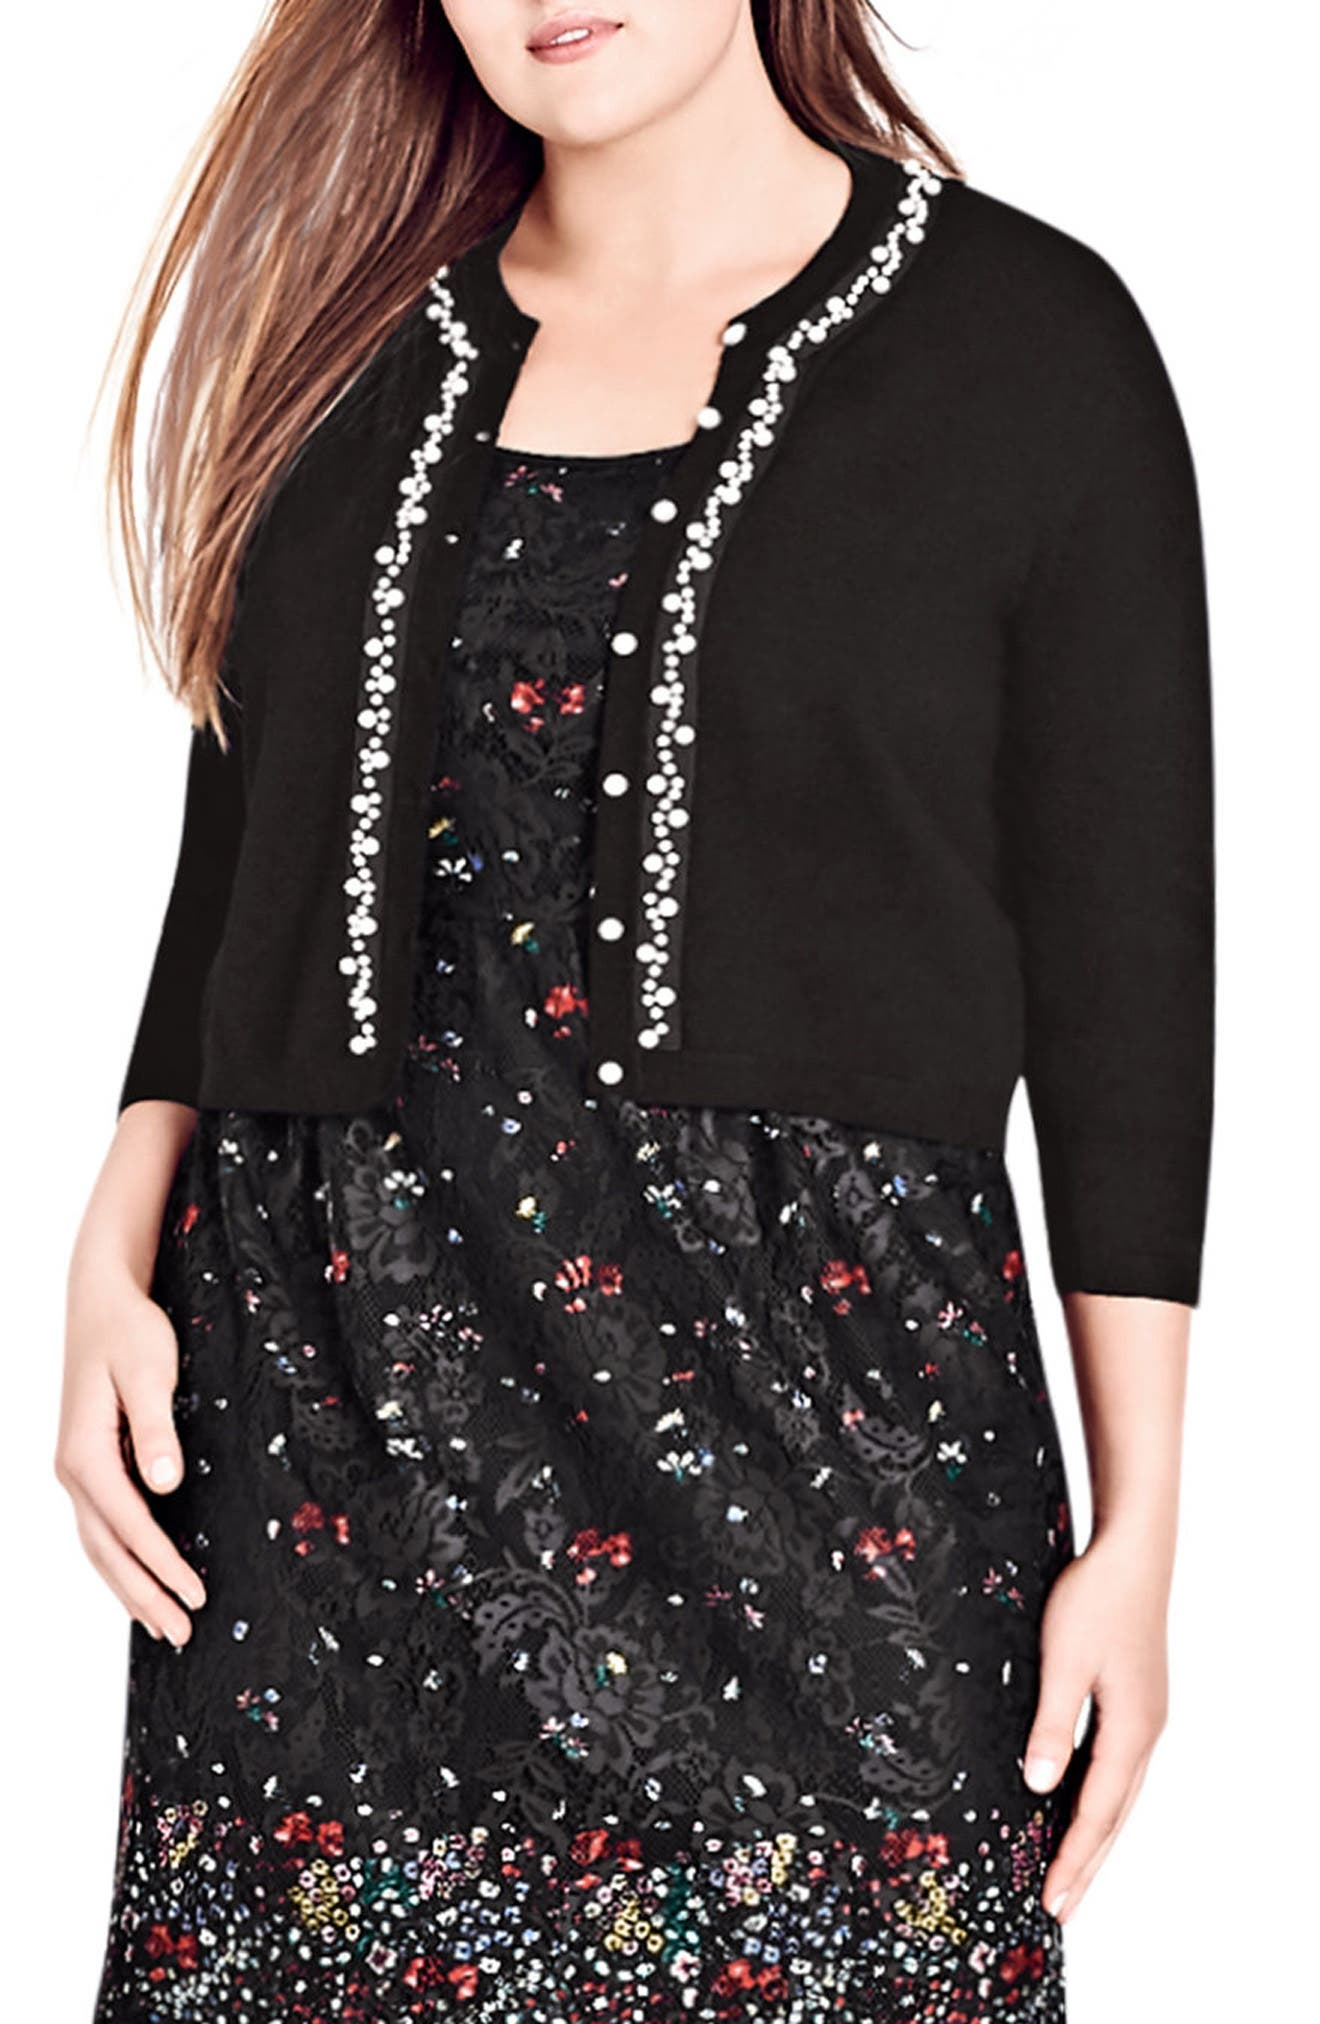 Main Image - City Chic Imitation Pearl Trim Cardigan (Plus Size)